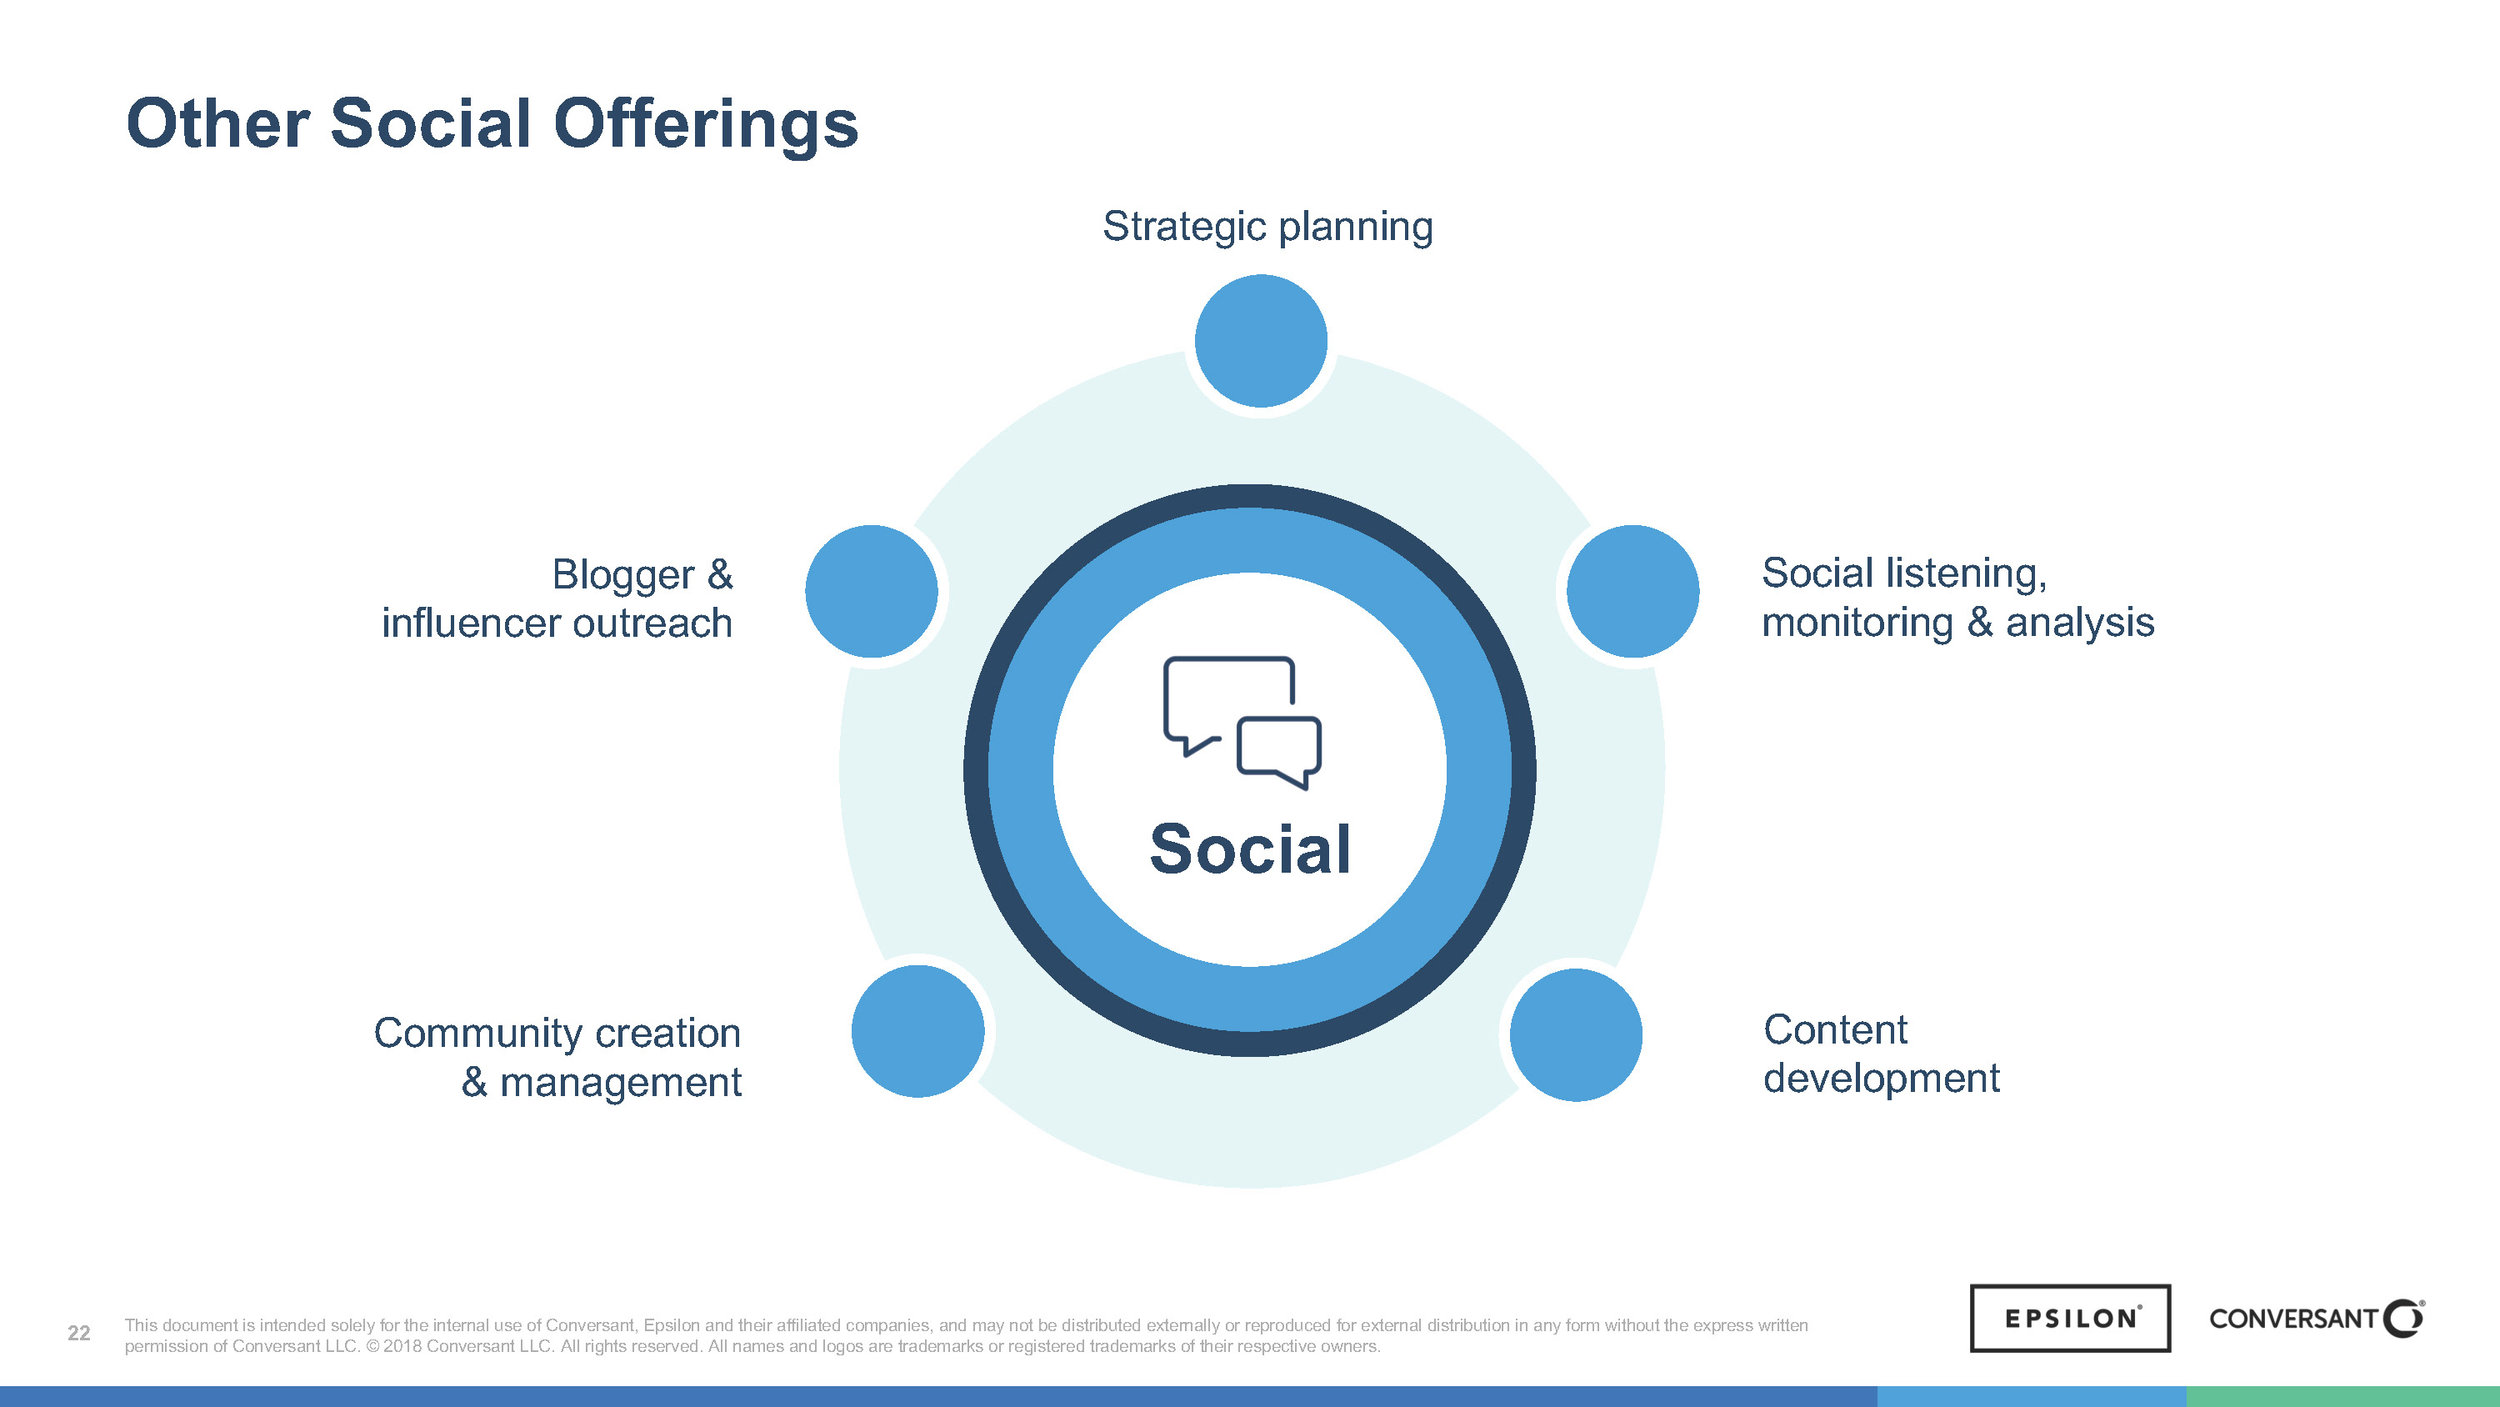 137648_Social Pitch Deck_7aug2018_Page_22.jpg